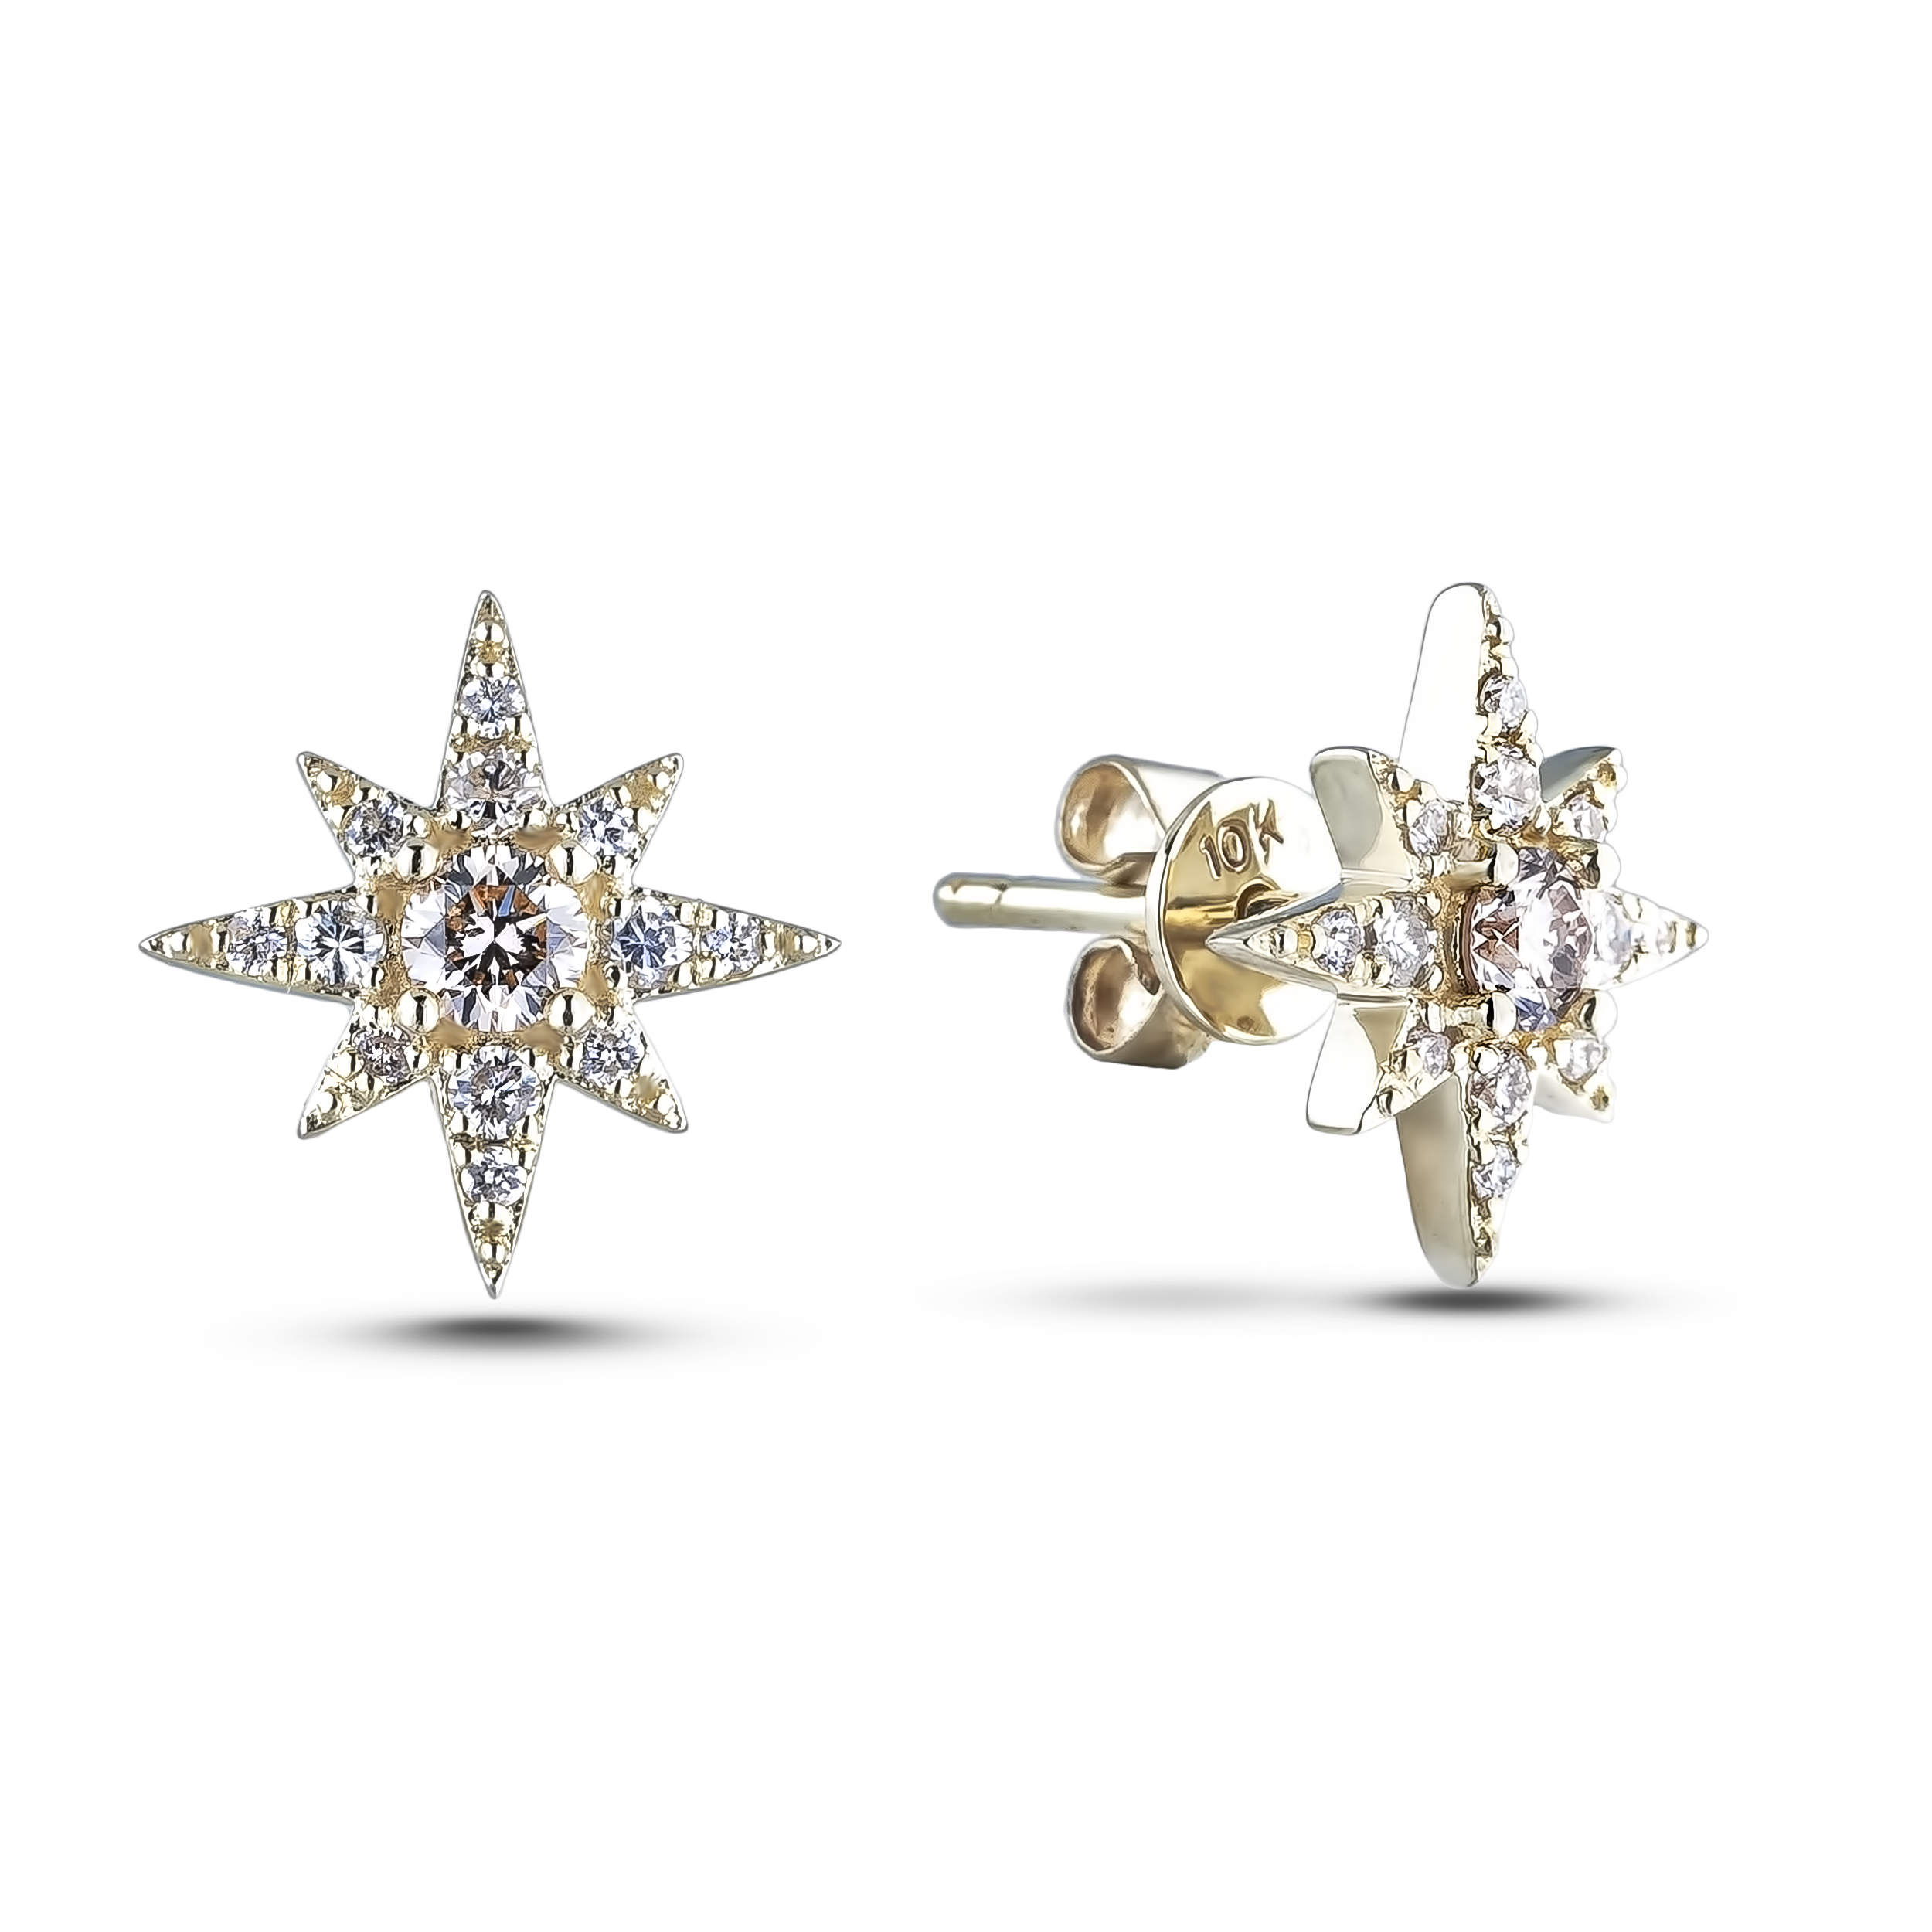 Diamond Stud Earrings LNG-E4603 (Earrings)